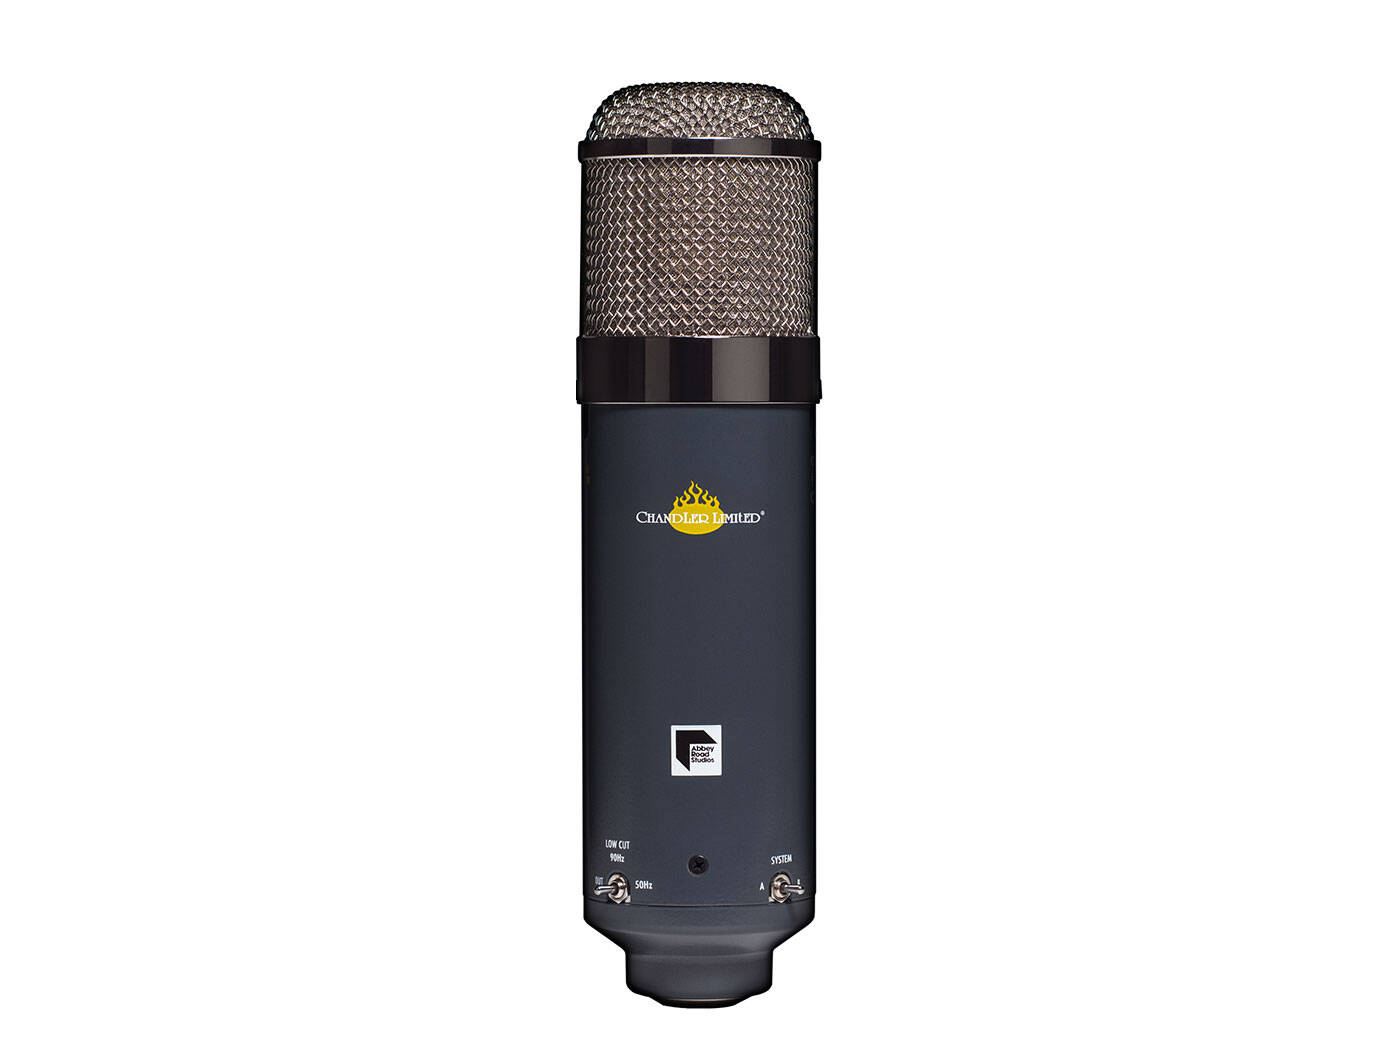 Chandler_Limited_EMI_Abbey_Road_Studios_TG_Microphone_front_trans_4Black_BG